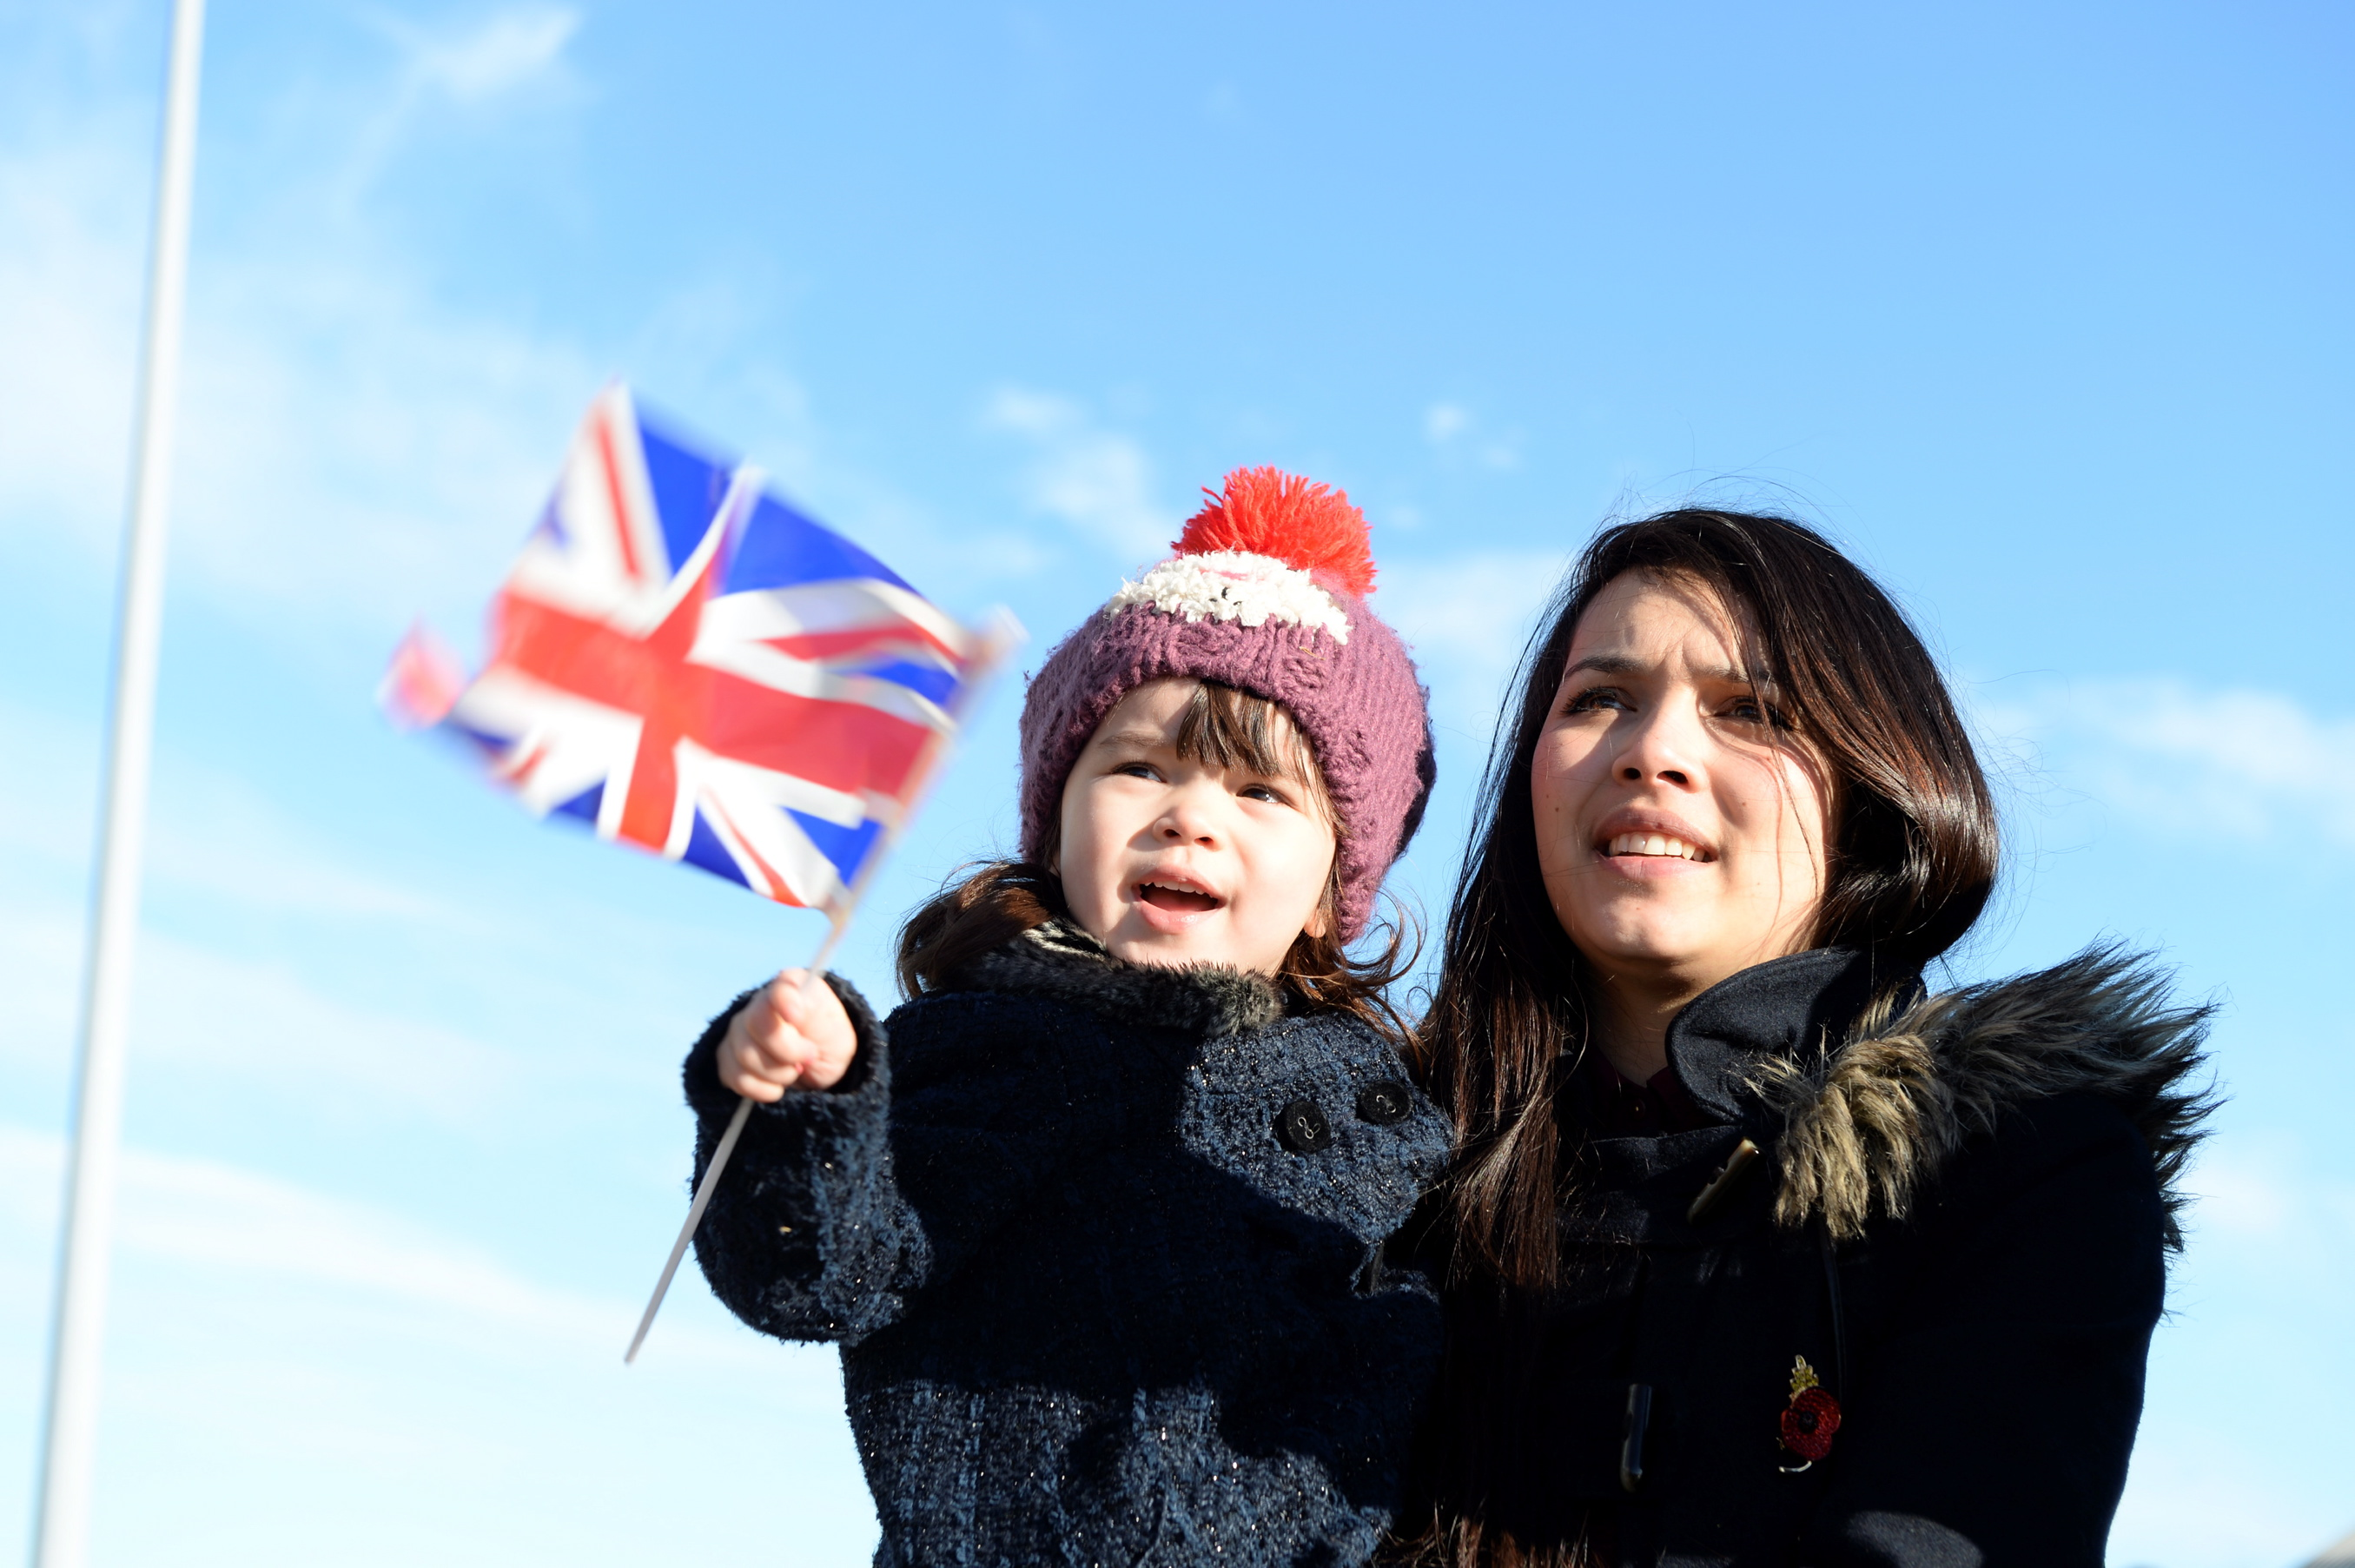 Summer Sabin (Left) spots her father on HMS Defender with her mum Sarah Sabin as HMS Defender returns home to Portsmouth.  A ROYAL Navy Destroyer was deployed to Scottish waters at short notice prior to Christmas in order to intercept and escort a number of Russian warships during their passage past the coast of the UK.  HMS Defender, one of the UK's newest and most powerful T45 Destroyers, began her 700 mile journey from Portsmouth to the North East of Scotland on 19th December in her role as Fleet Ready Escort. Trained and prepared as the Royal Navy's high readiness warship, Defender was standing by over the Christmas and New Year period to respond to a wide range of short notice tasking, from search and rescue duties to maritime security patrols such as this.  Defender patrolled home waters in high sea states and storm force winds to welcome the Russian task group which comprised of 6 vessels, including a 65,000 tonne aircraft carrier.  Due to bad weather the Russian fleet anchored in the Moray Firth before heading down the East coast of the UK. As a sign of the friendship between the 2 navies, good will messages were exchanged between the Royal Navy and Russian ships on New Year's Eve.